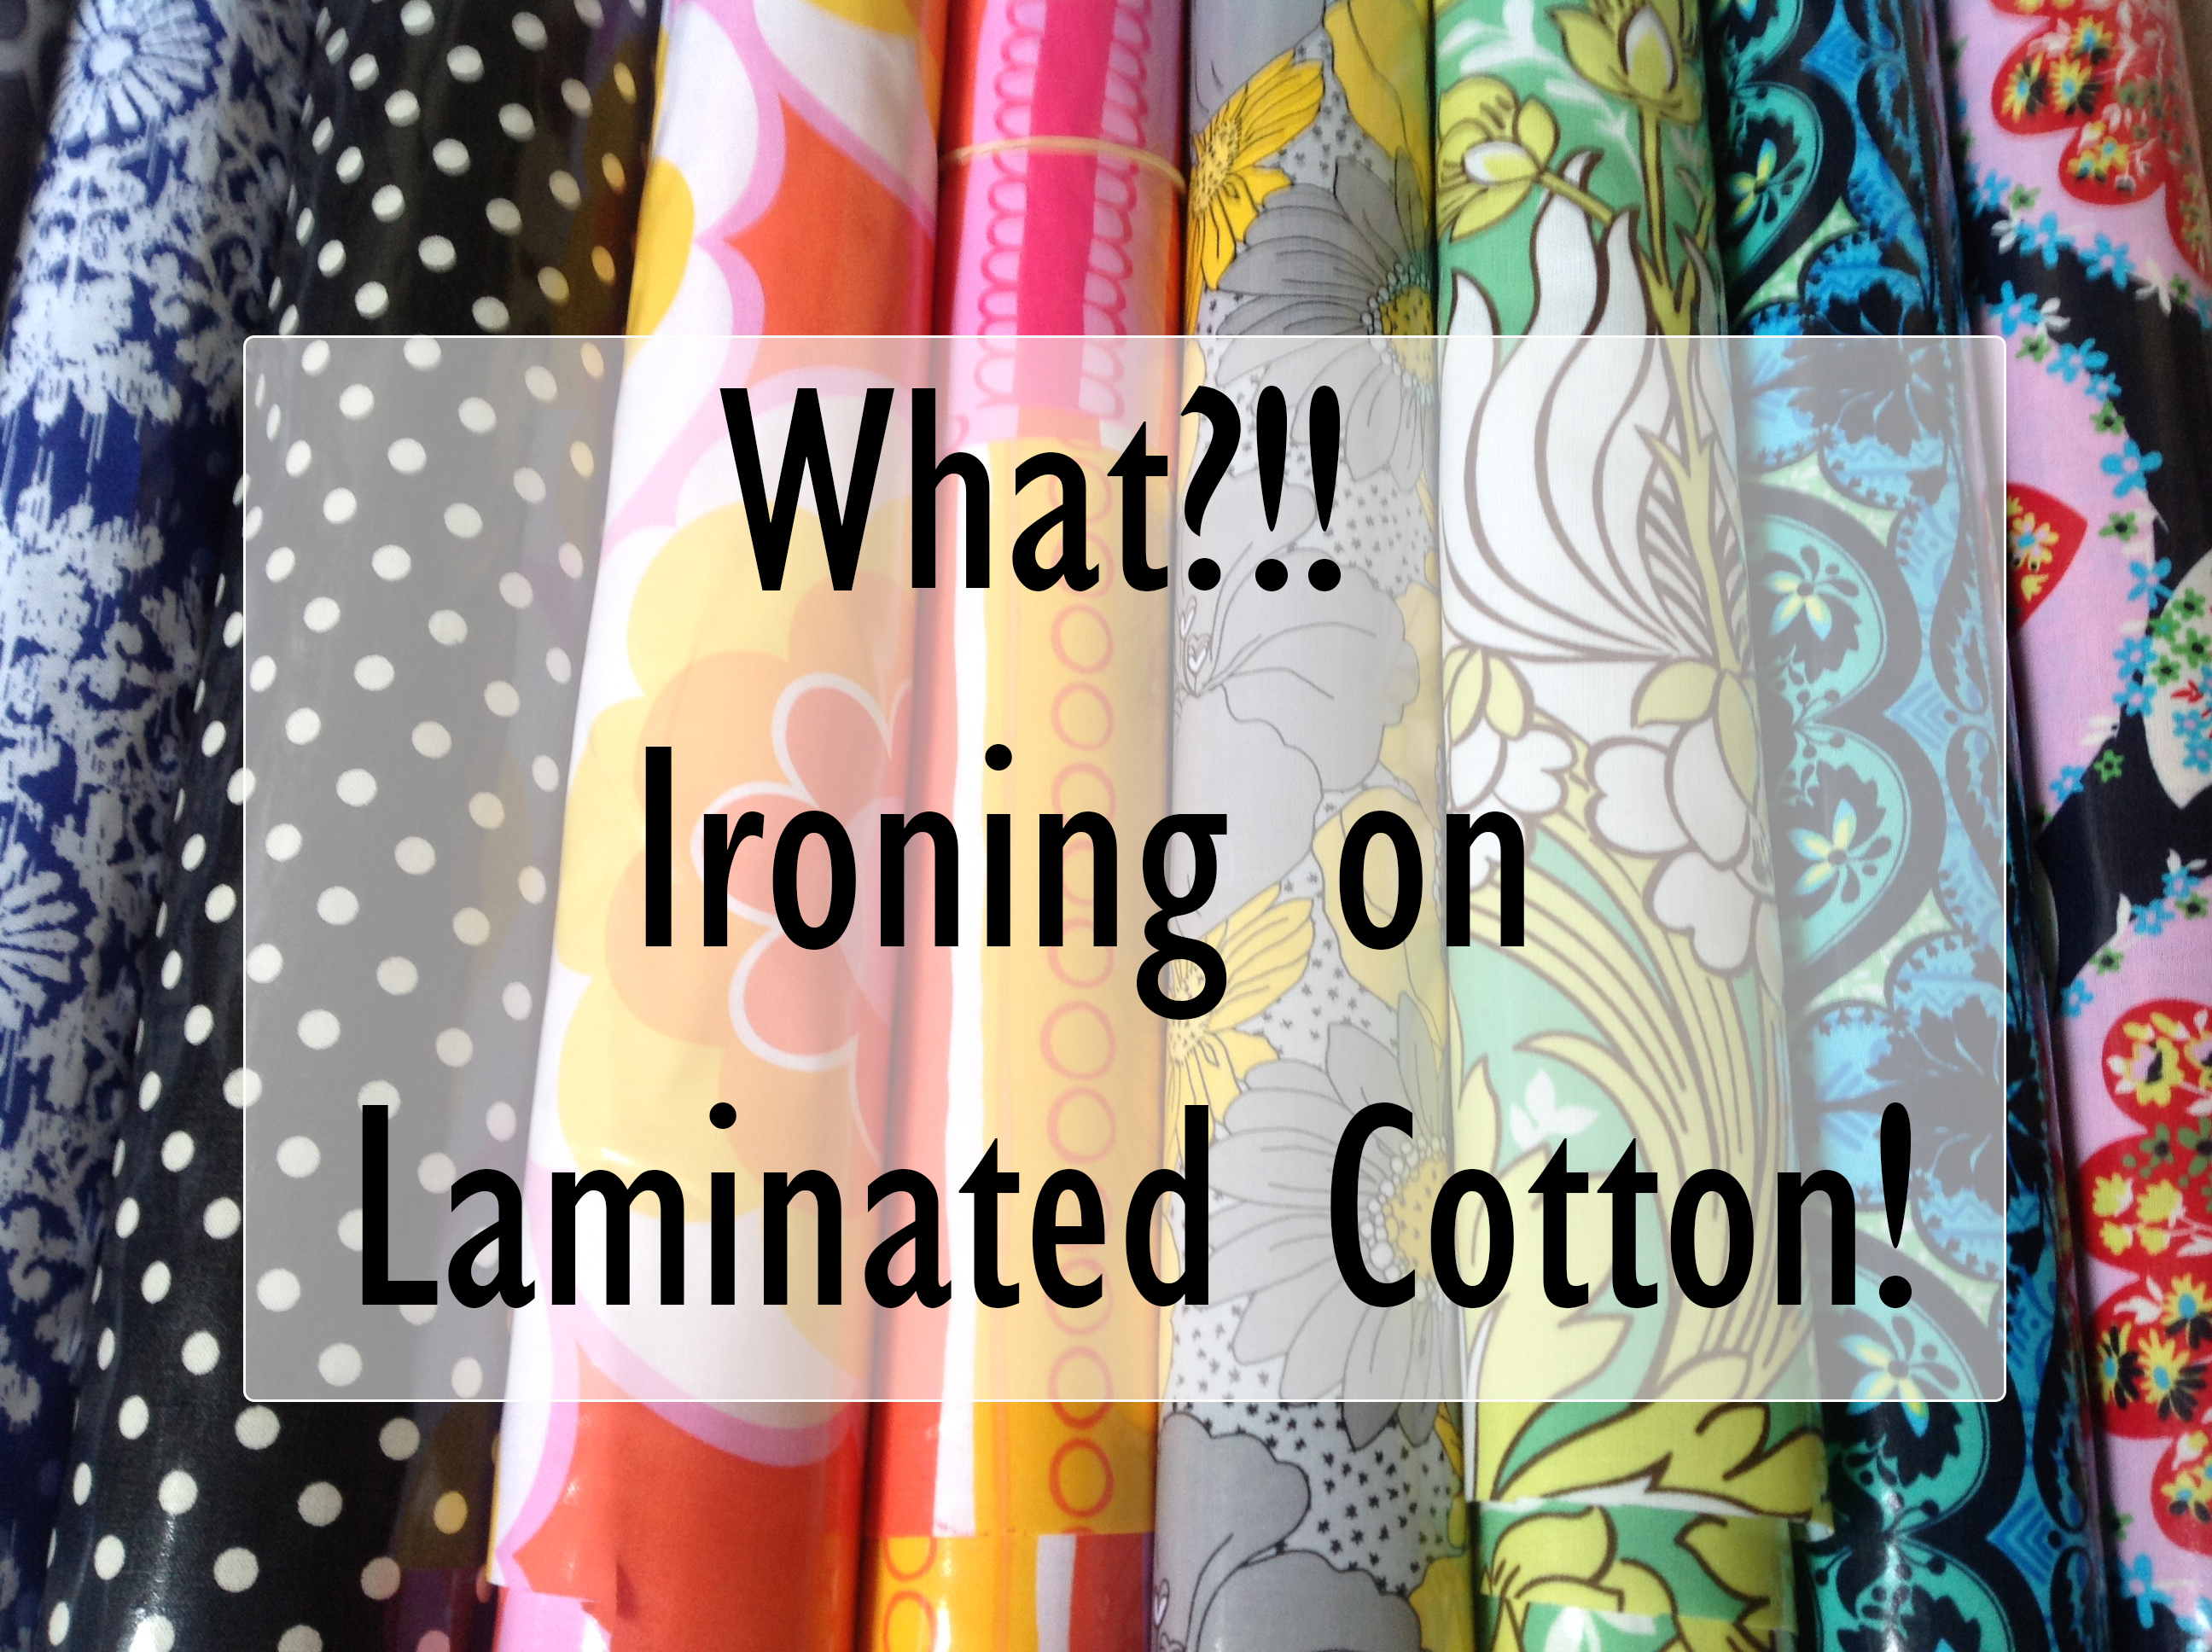 Oh, yes I did! Ironing laminated cottons